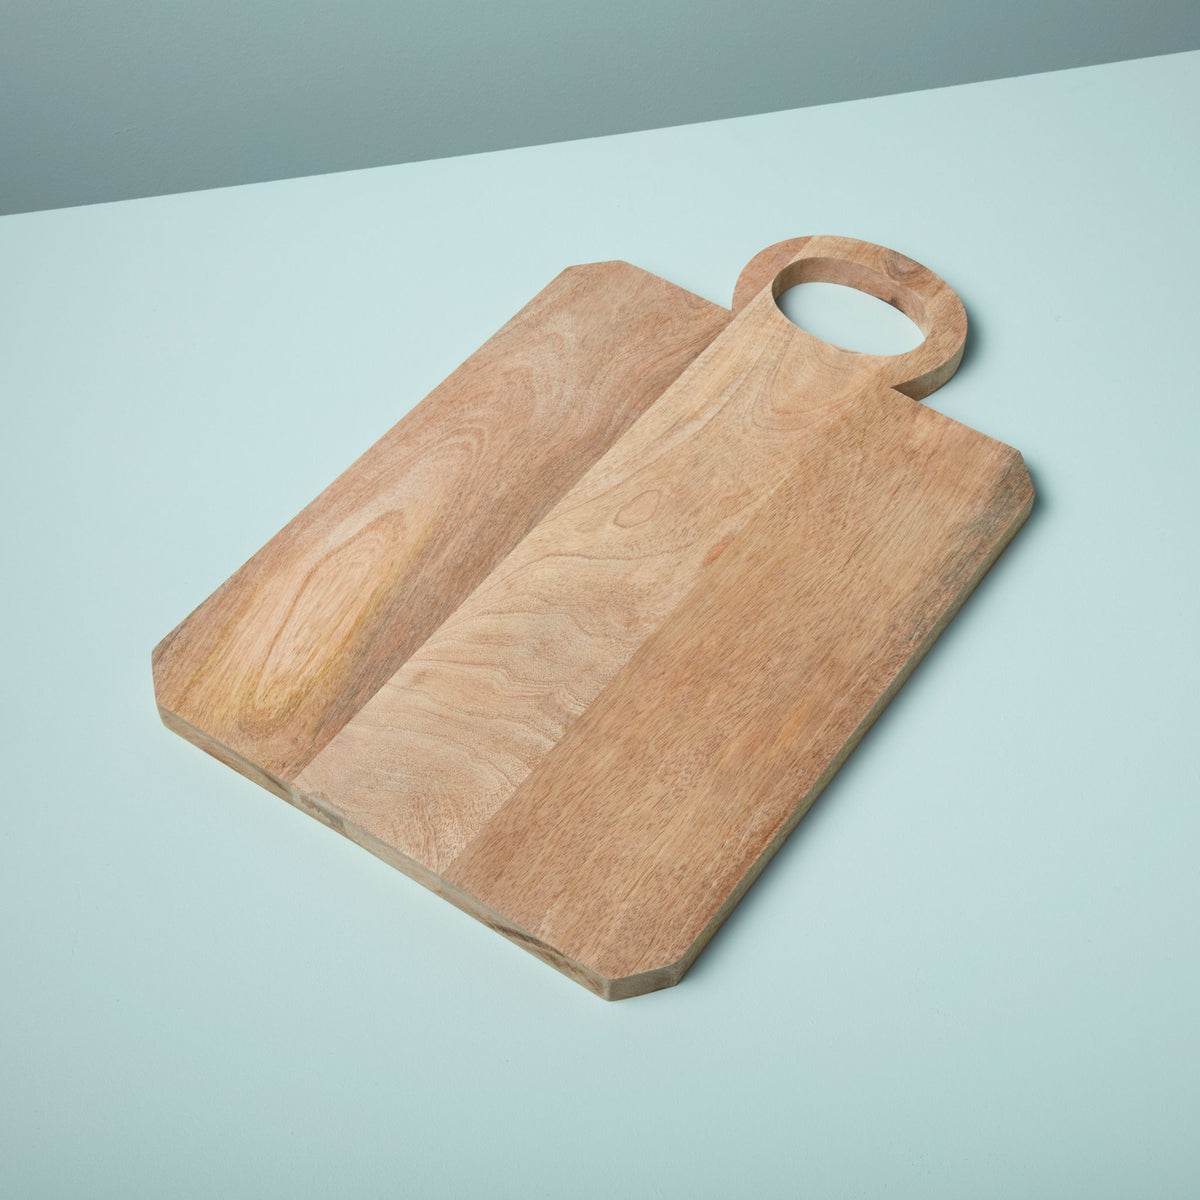 Raw Mango Wood Handled Board